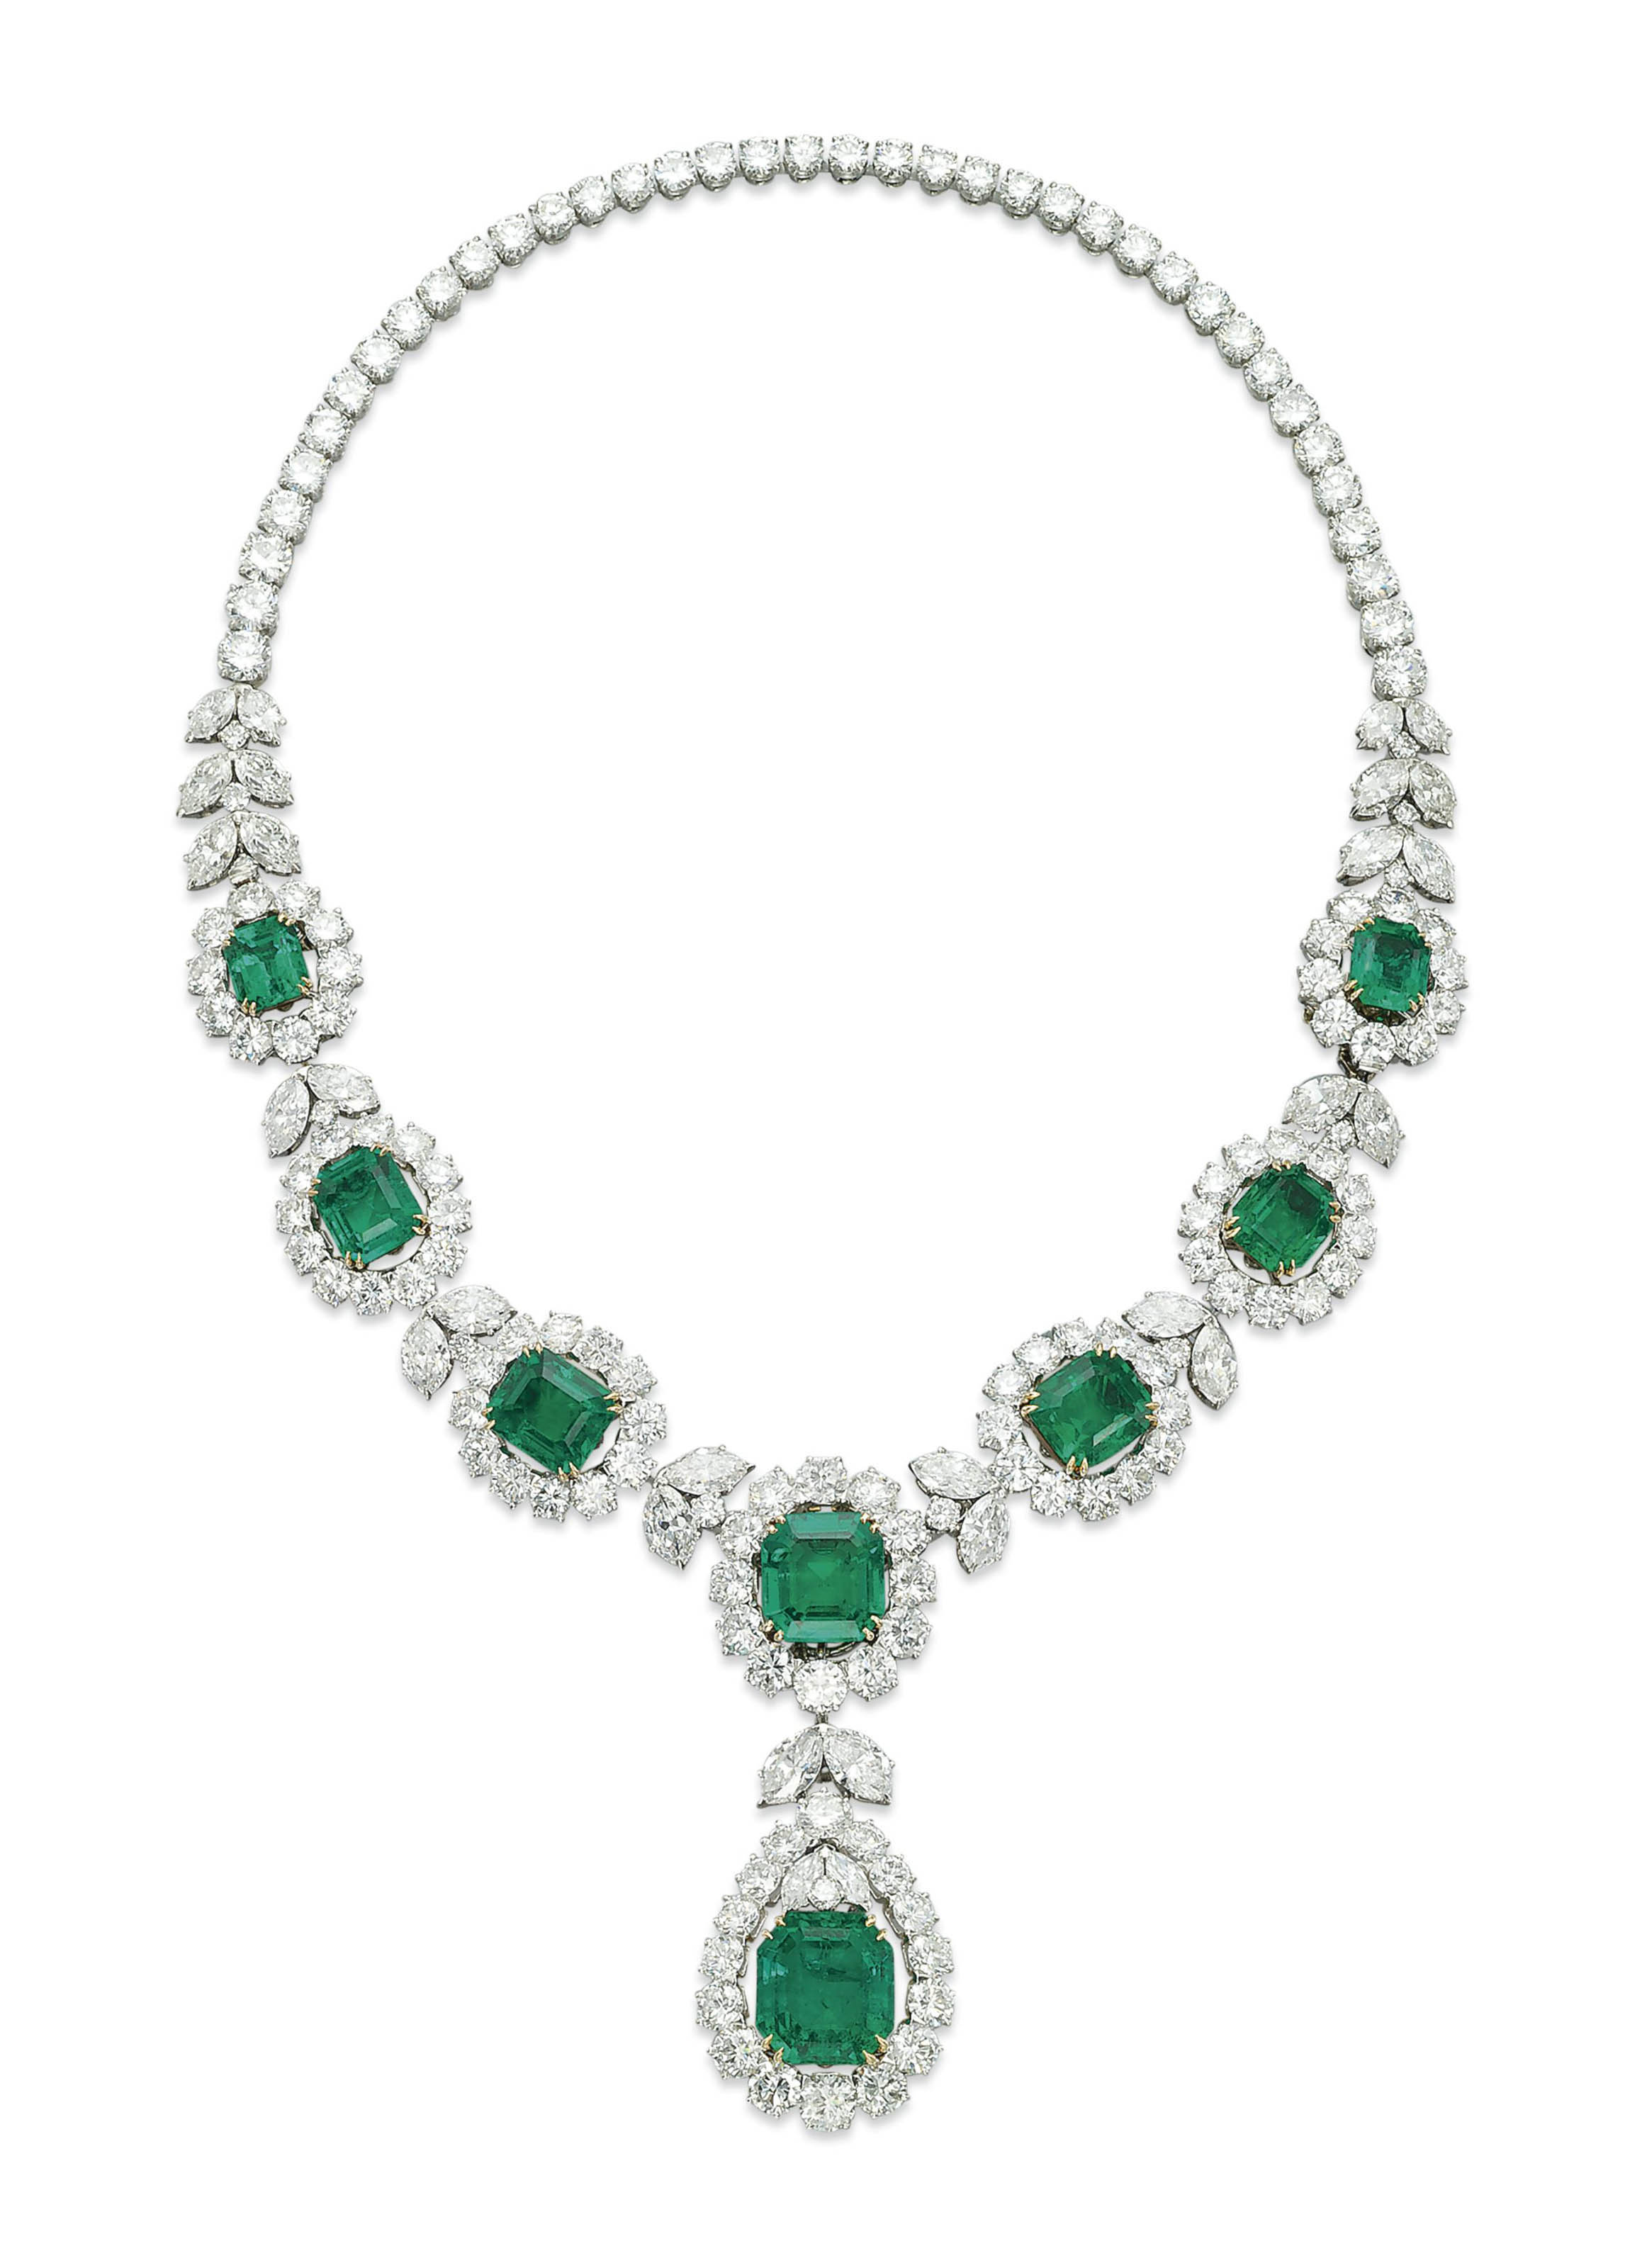 A Fine Emerald And Diamond Necklace By Van Cleef Amp Arpels